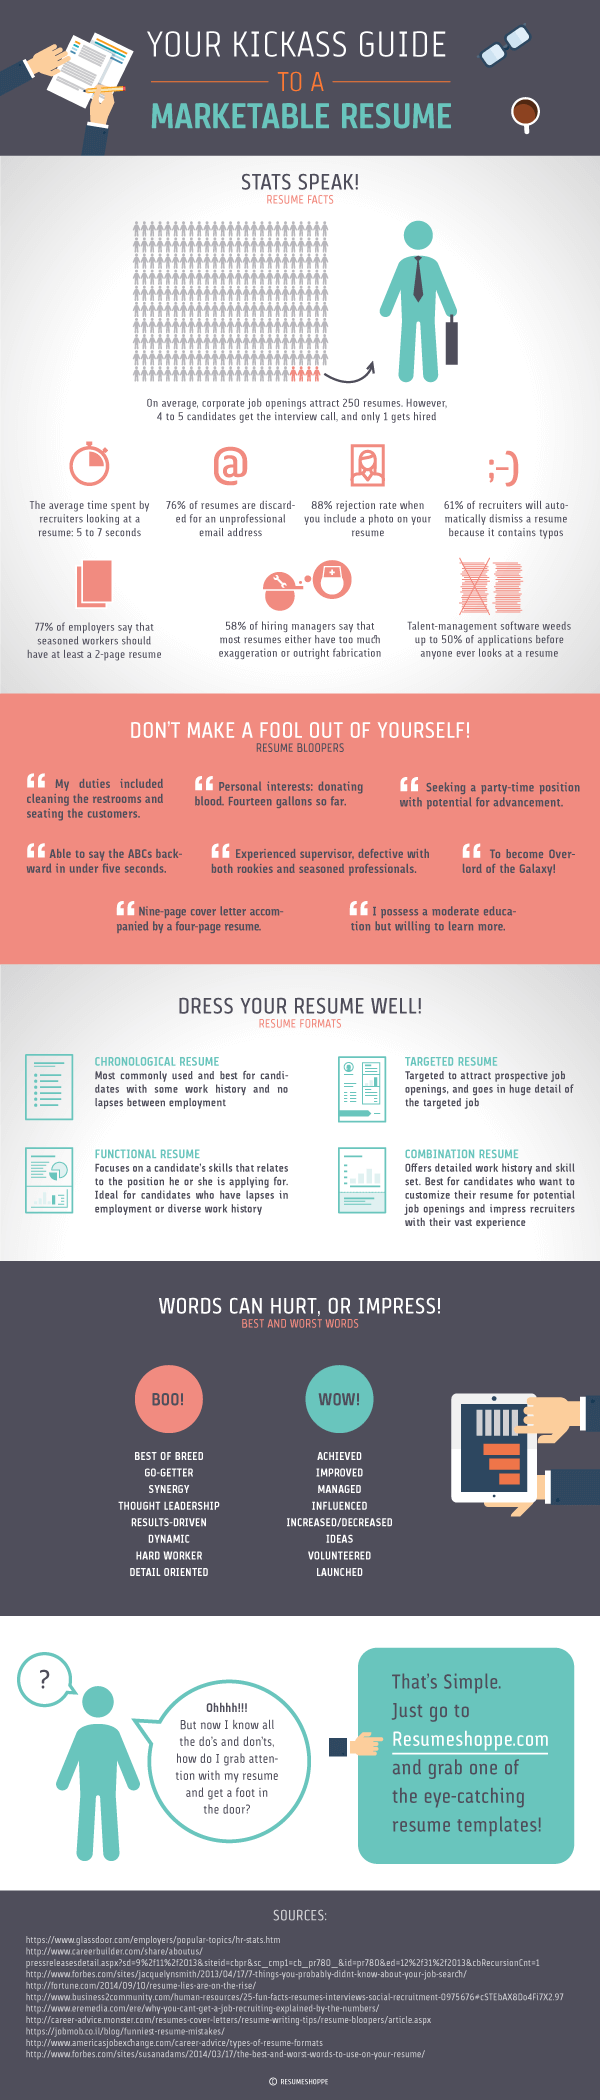 Guidelines For A Resume Your Kickass Guide To A Marketable Resume Infographic  Perfect .